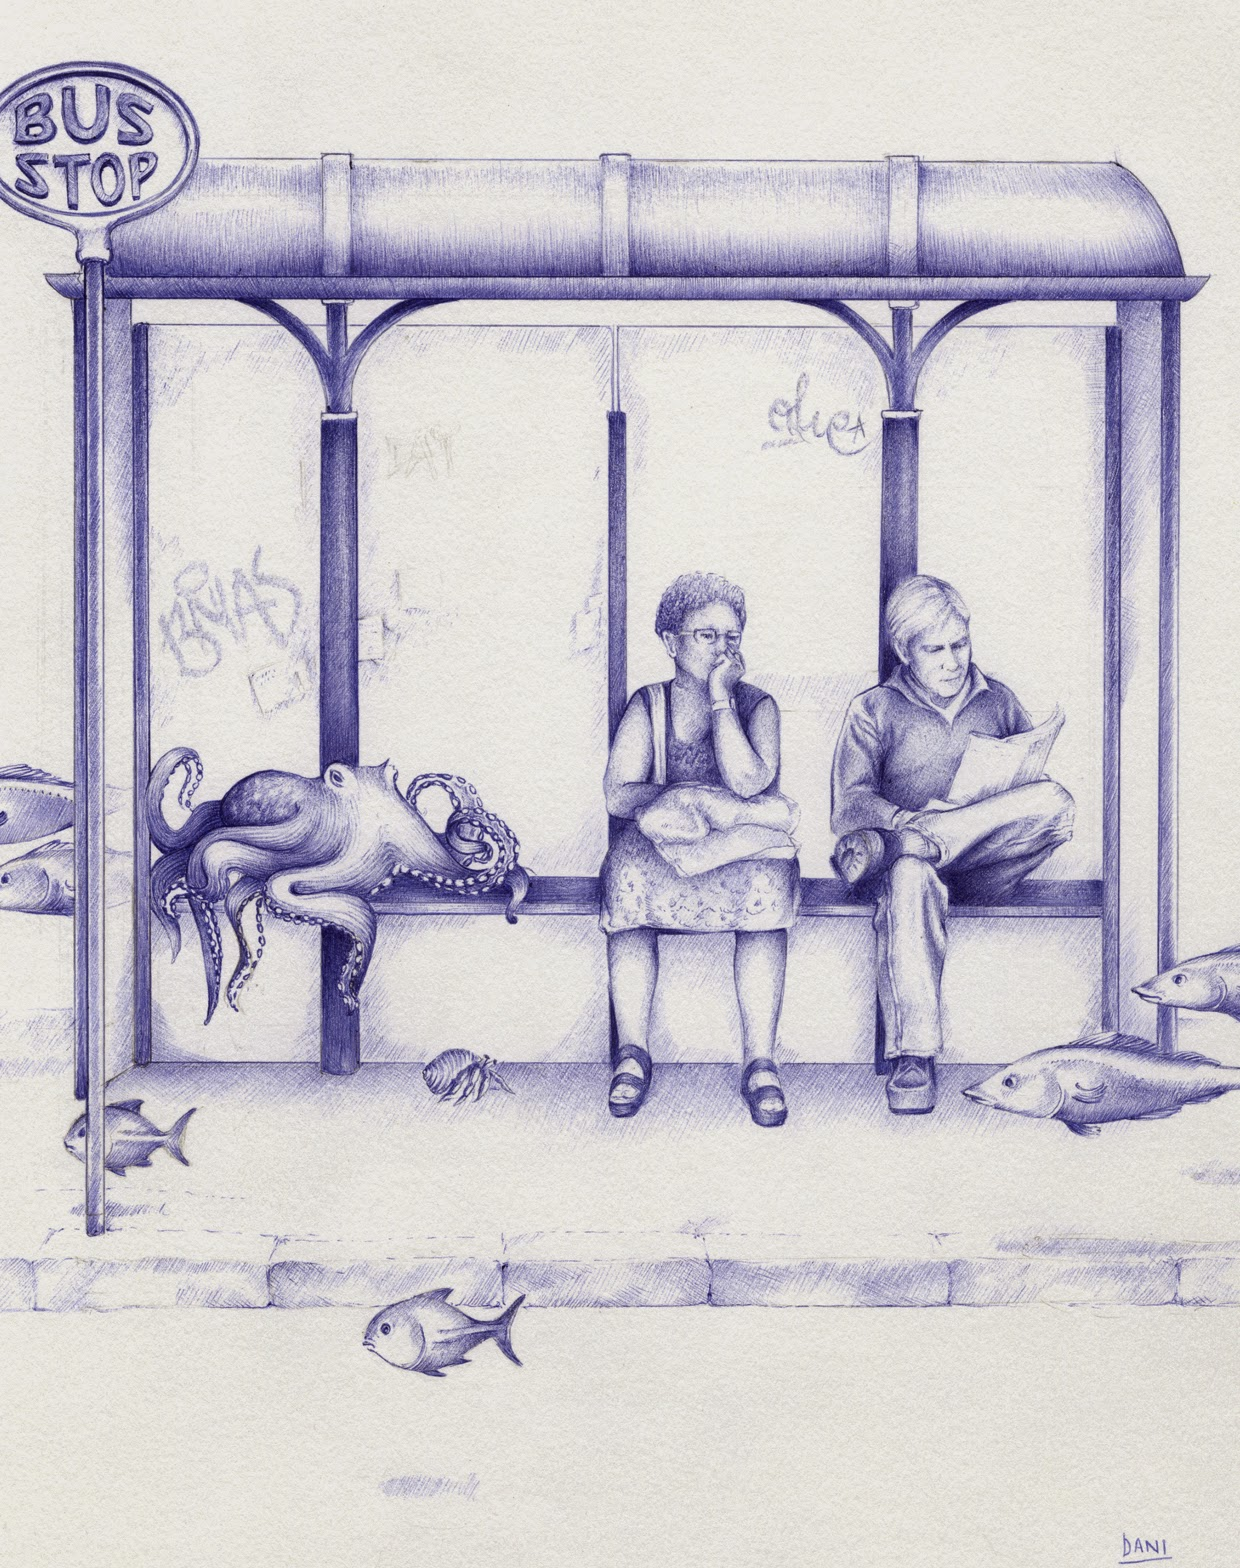 09-Waiting-for-Santa-Maria-Dani-Loureiro-Zero-Gravity-Ballpoint-Pen-Drawings-www-designstack-co